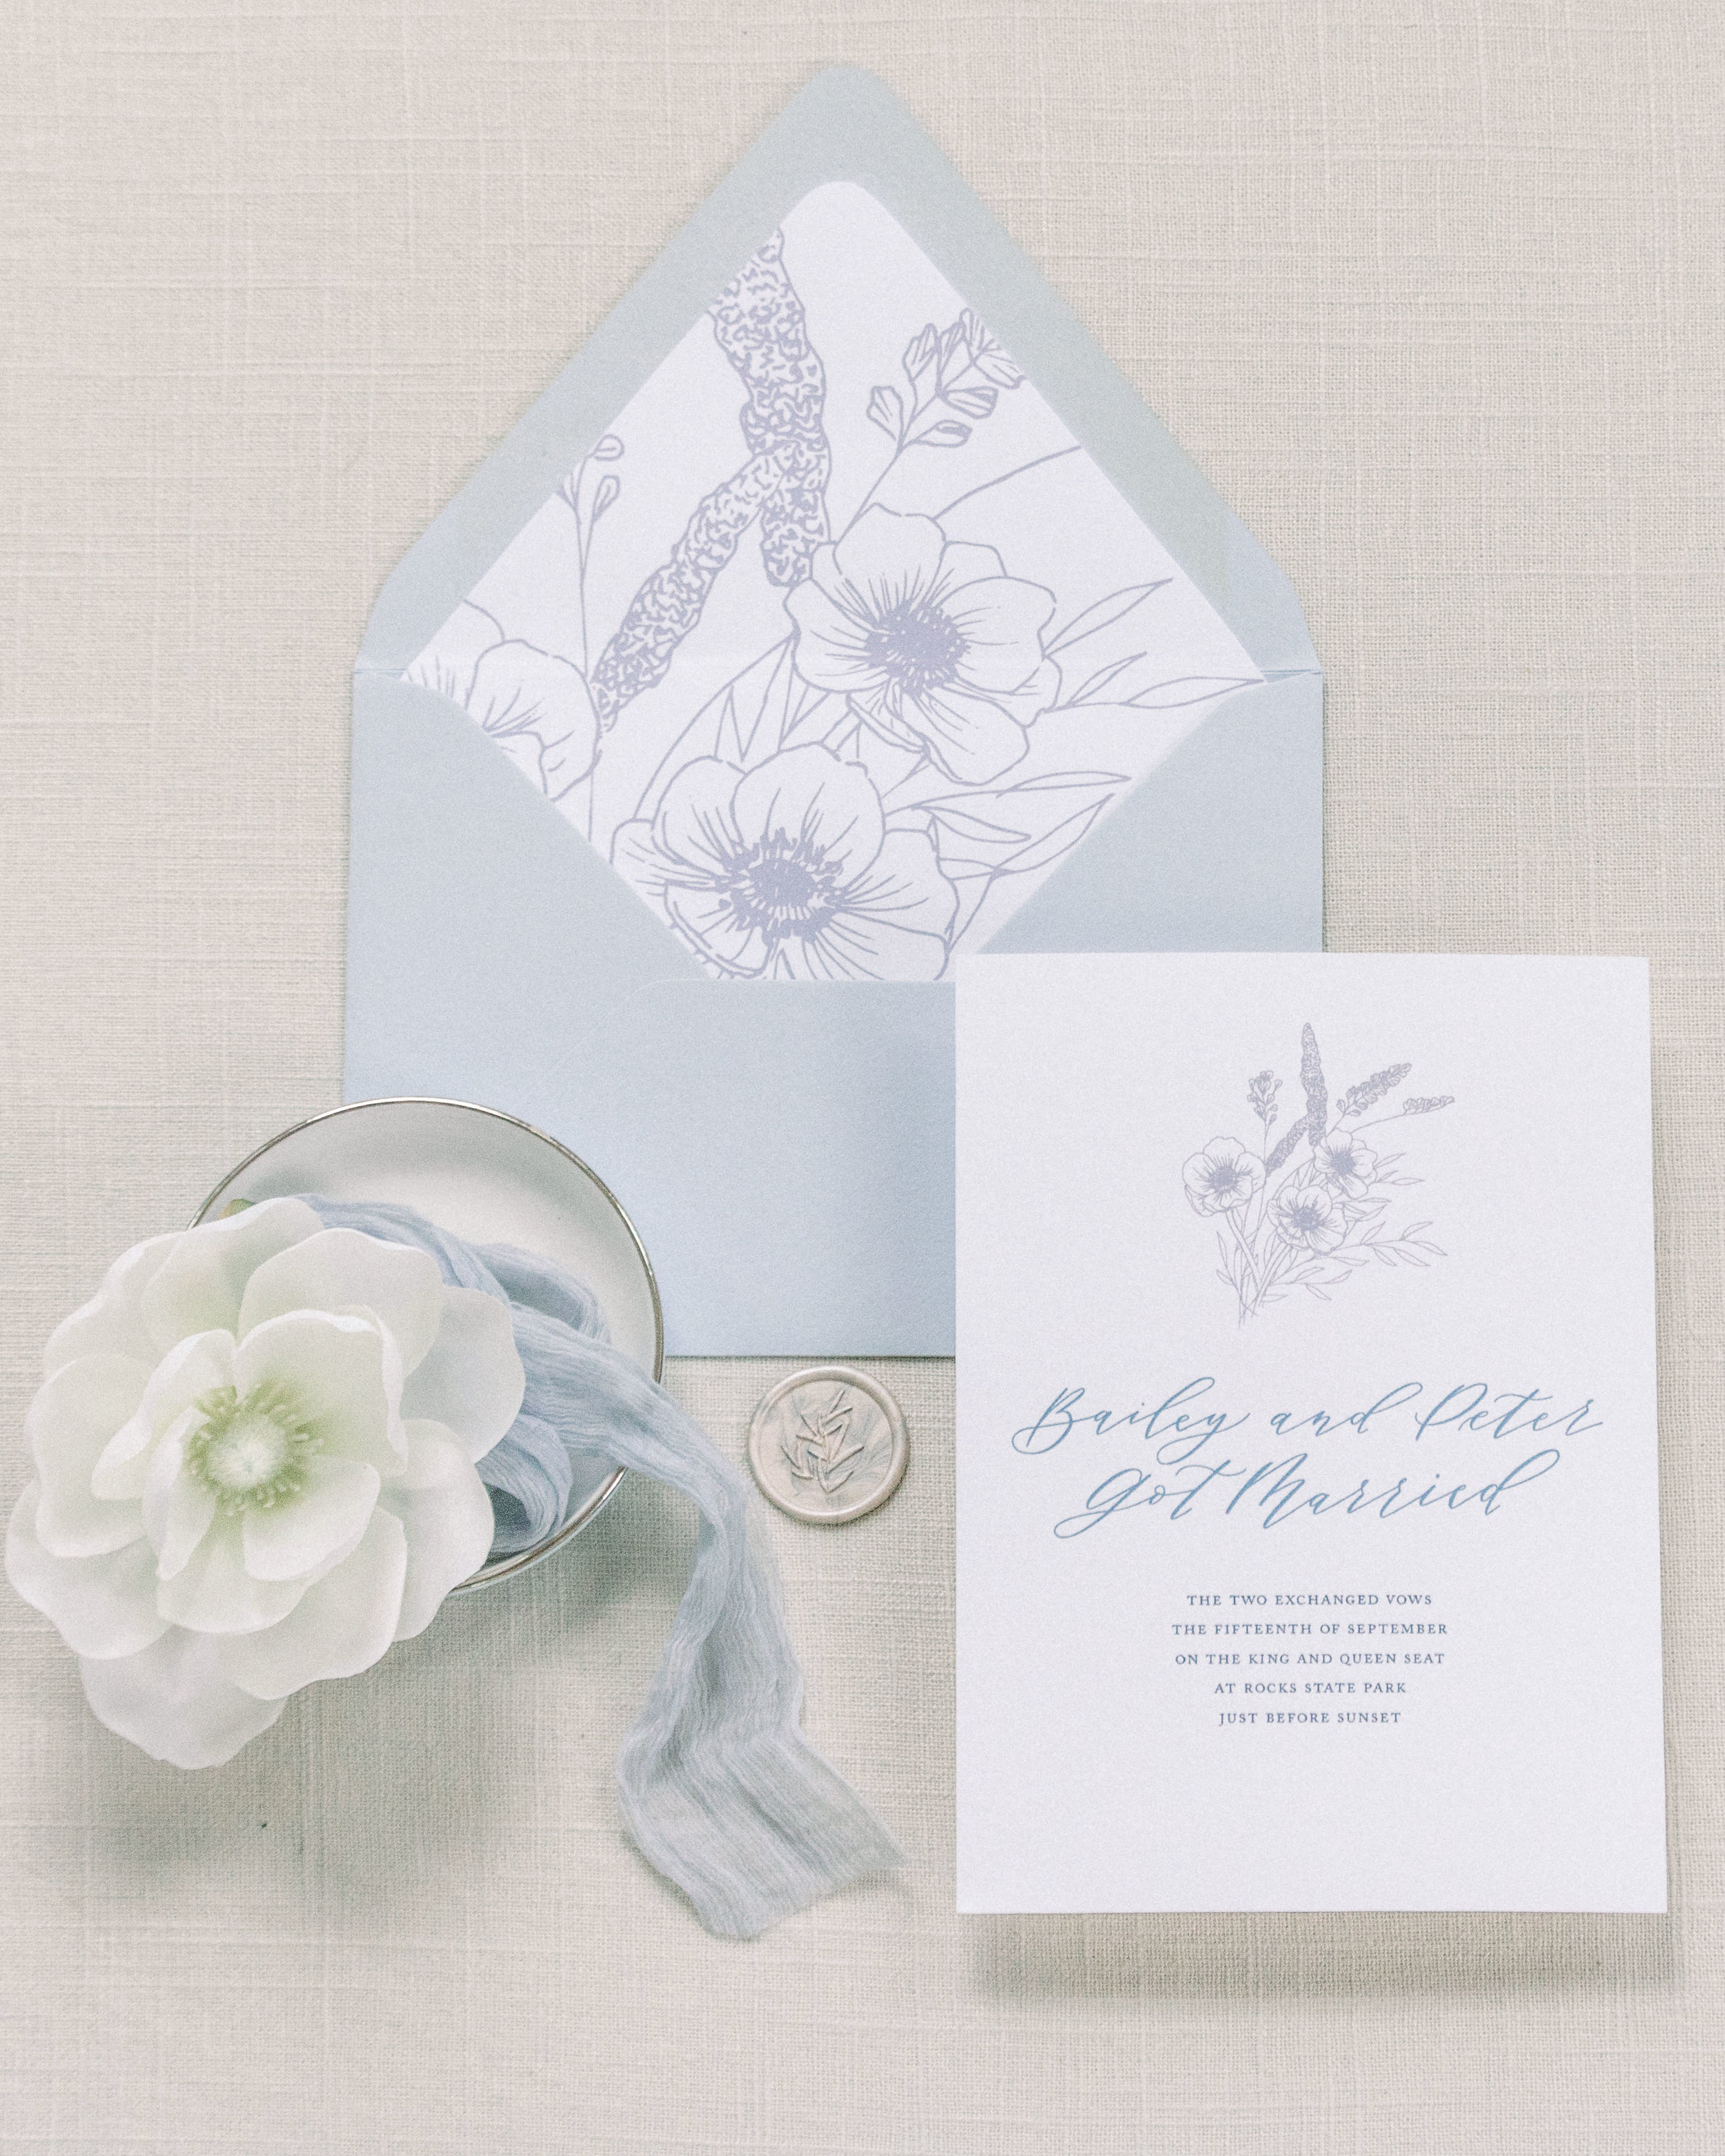 Something Blue City Hall Elopement. Stationery by Caitlin O'Bryant Design. Photography by Savannah Jane Design. Florals: Little House of Flowers. Hair and Makeup: Amanda Merrell Beauty. Venue: Baltimore City Hall. Models: Ronald Vu and Allison Harle.